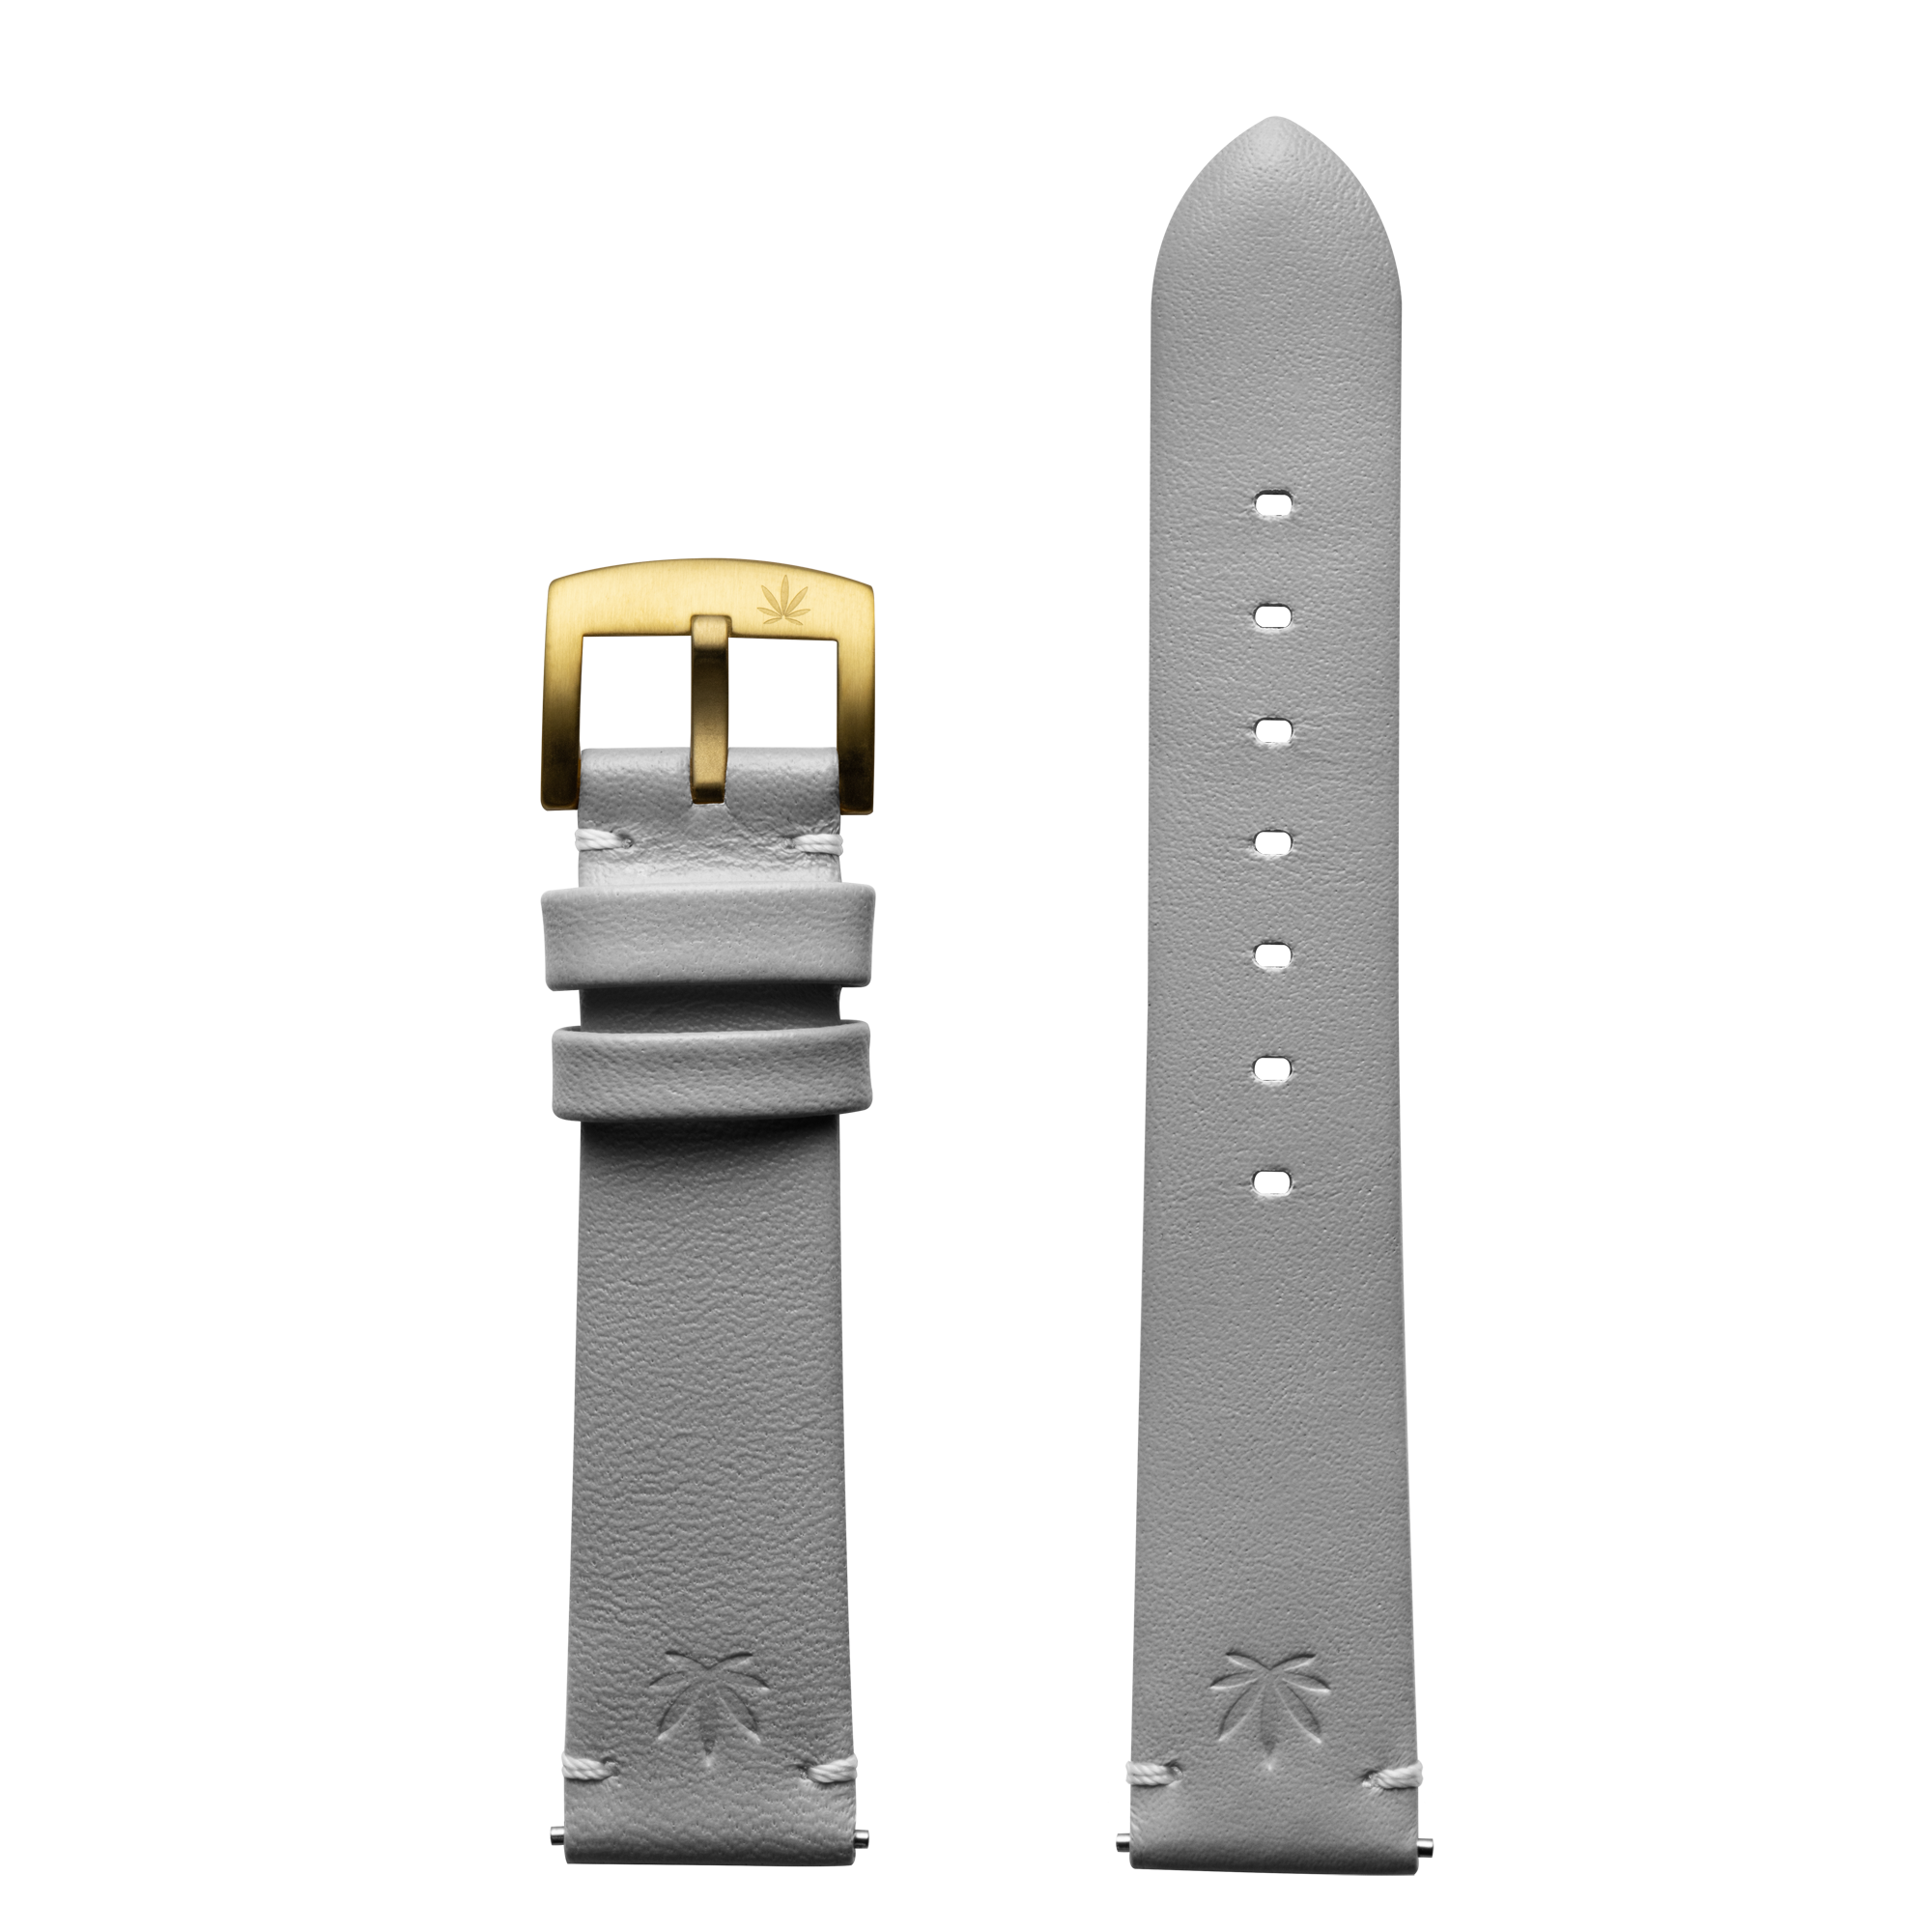 420Waldos Mary Jane Series Light Gray Strap with IP Gold Buckle